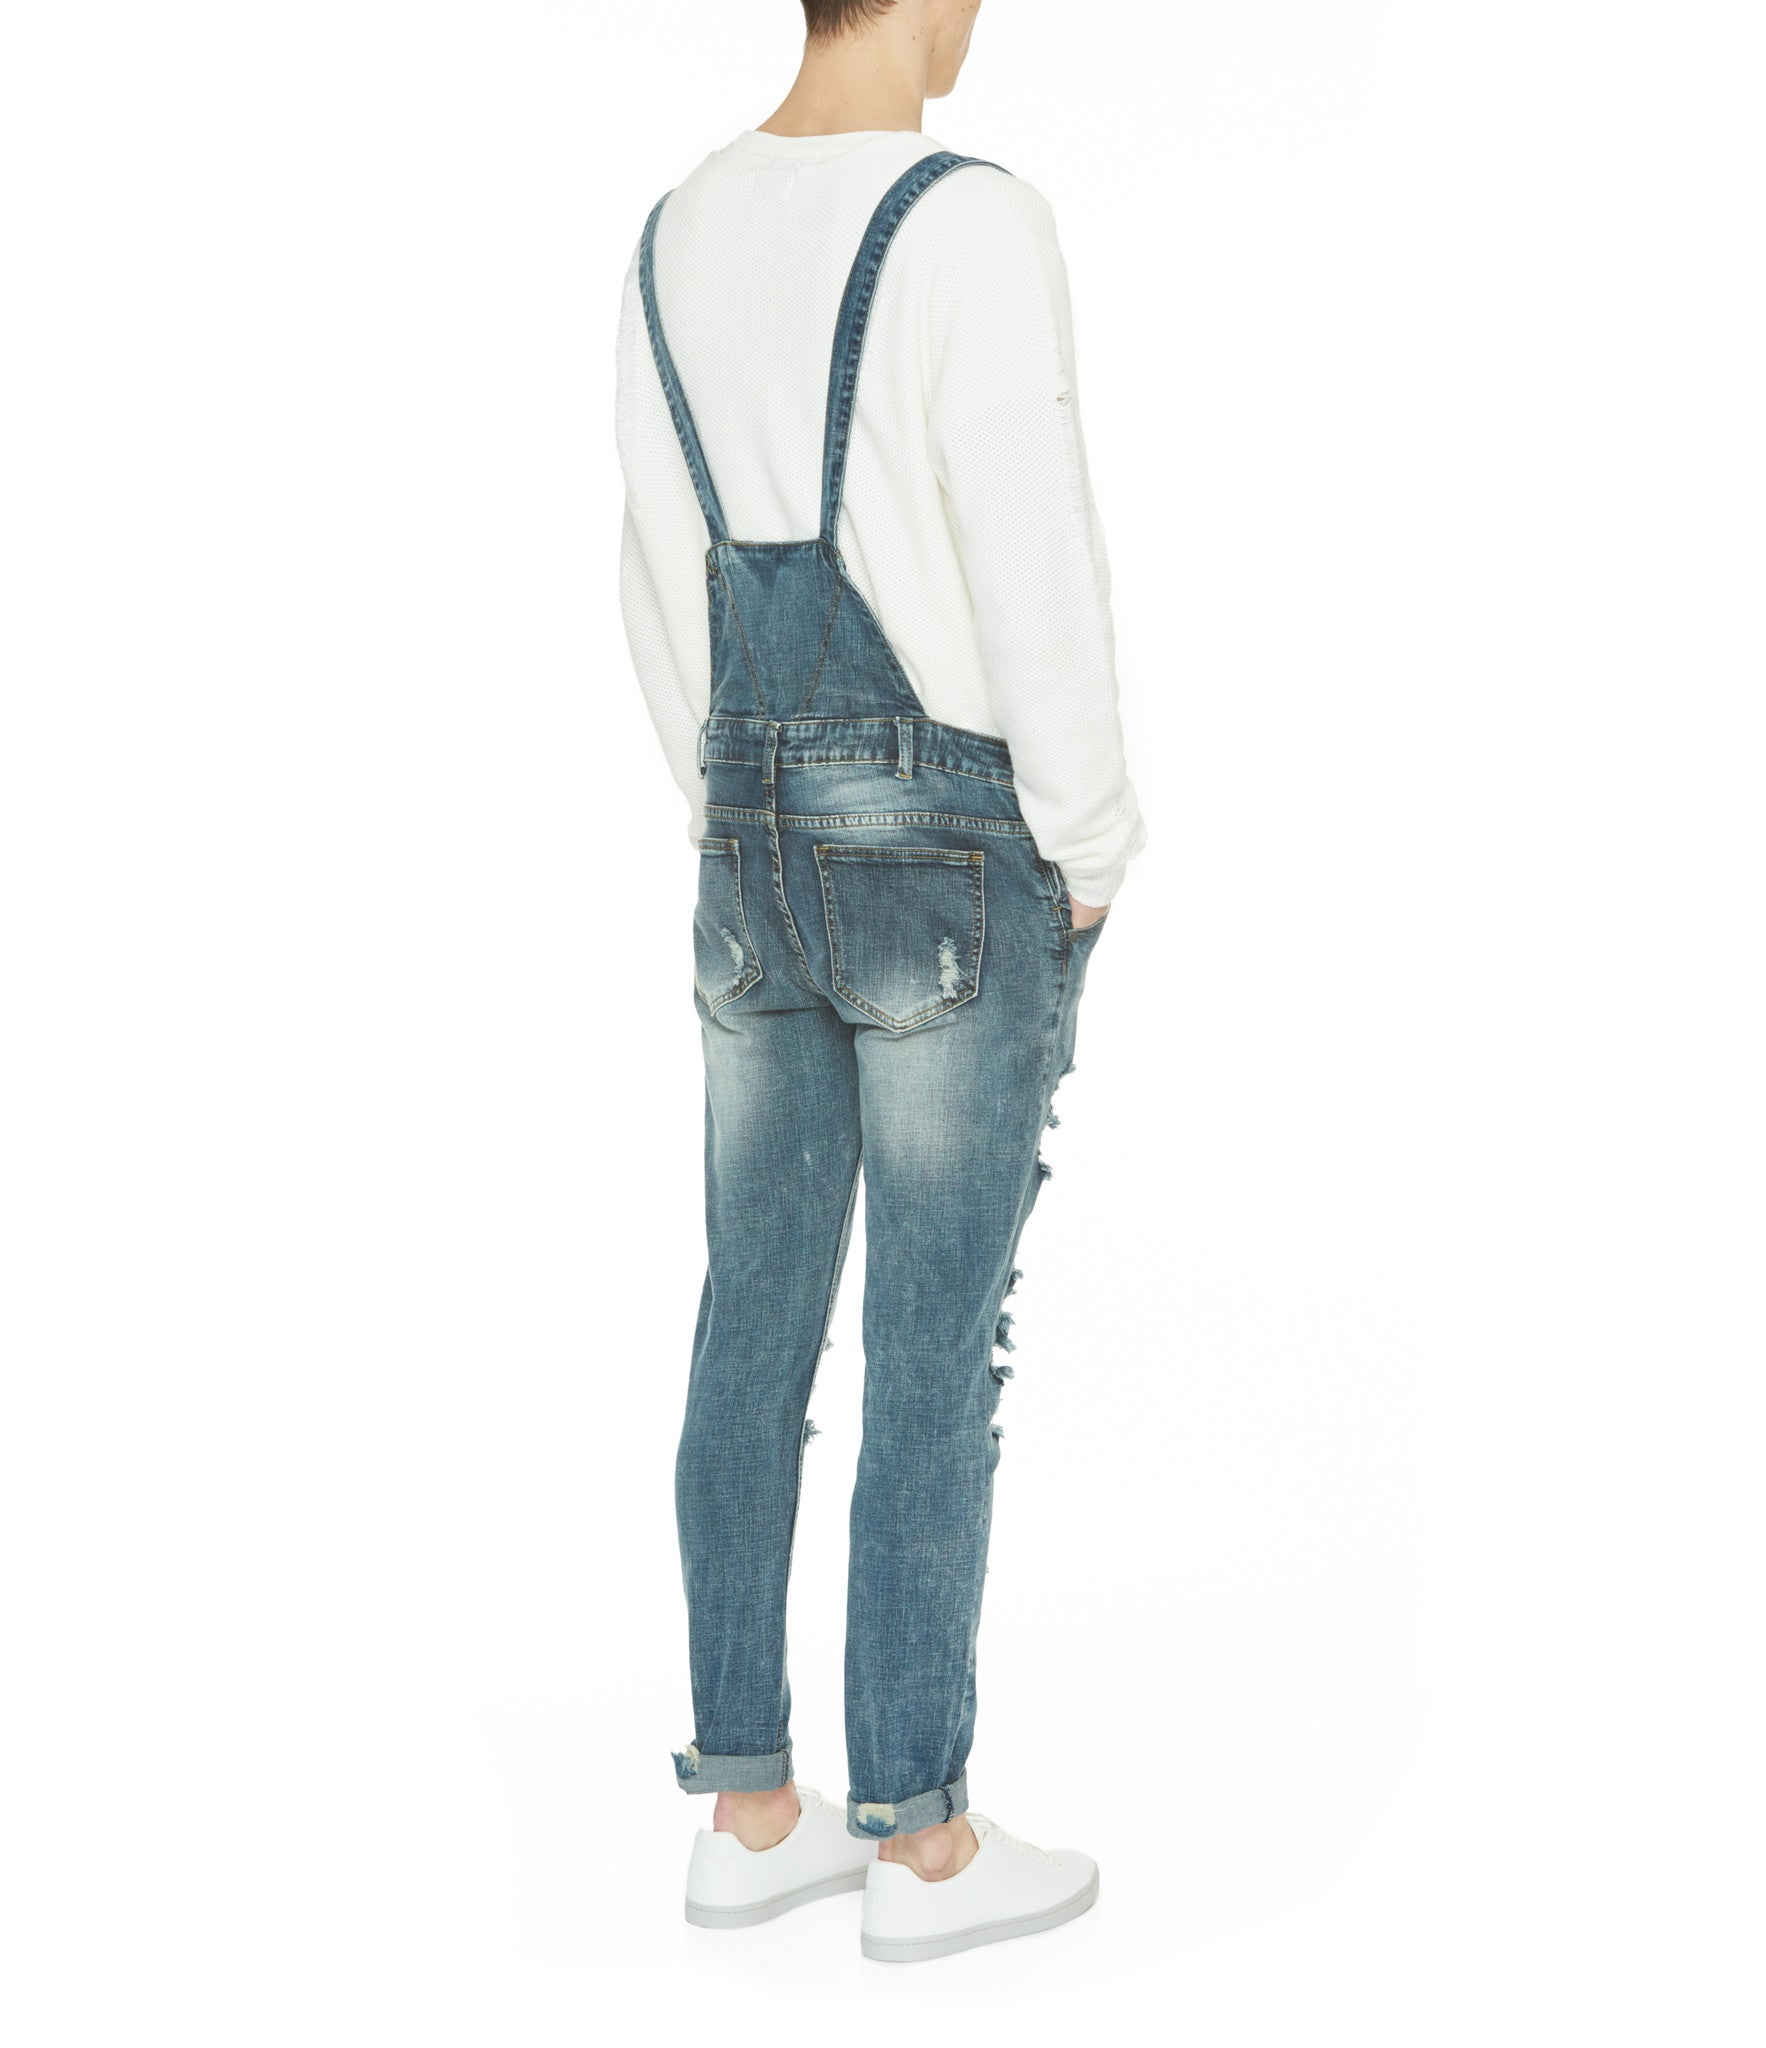 JN181 Distressed Stone Wash Dungaree Denim - Mid Blue - underated london - underatedco - 10